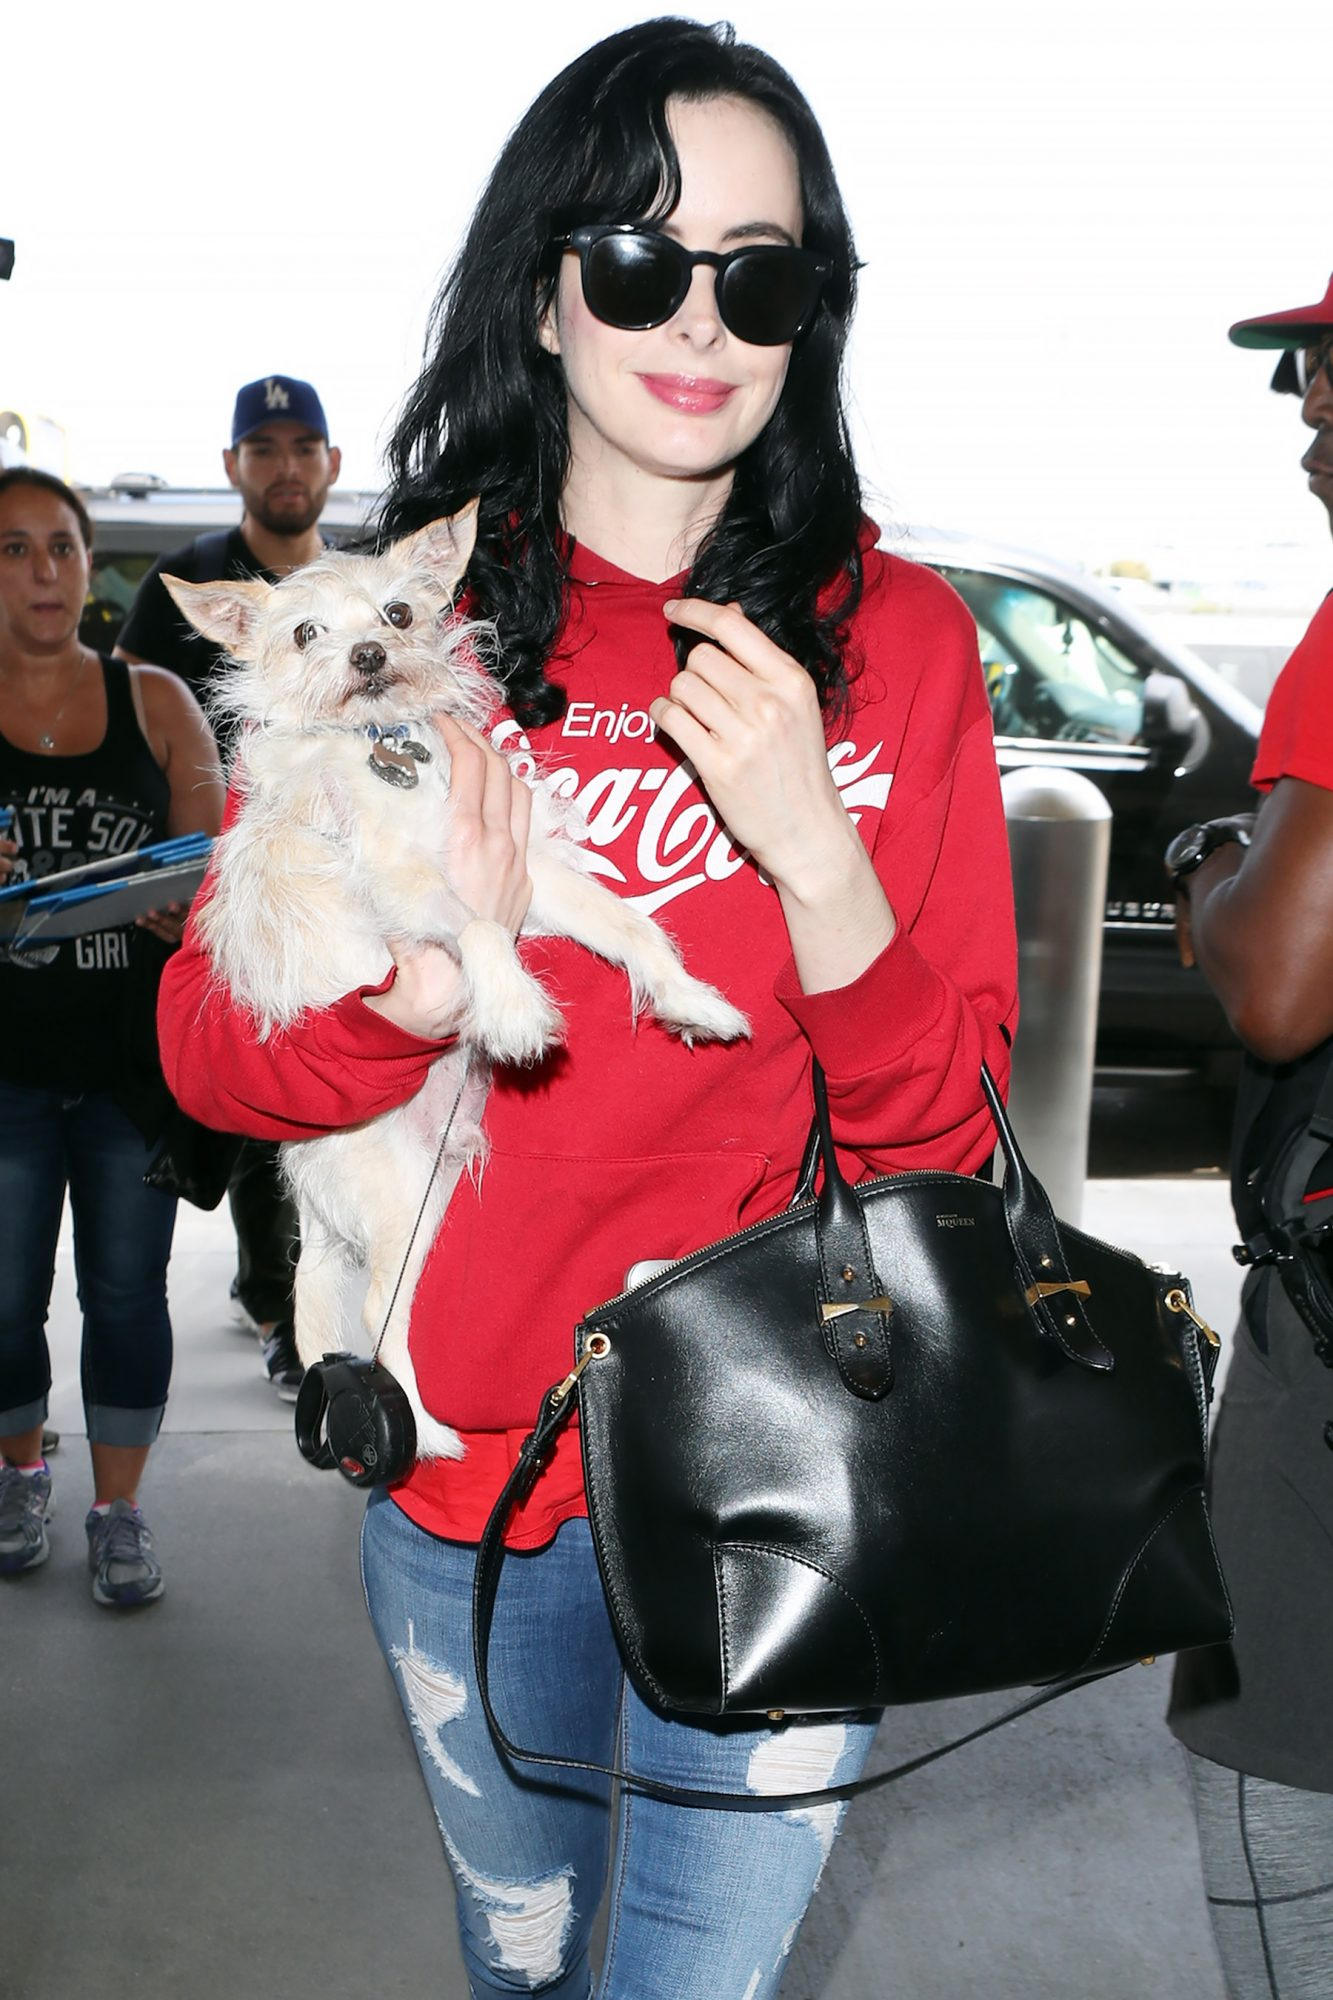 Krysten Ritter Who stars as Jessica Jones Departs LAX airport  with lil pup